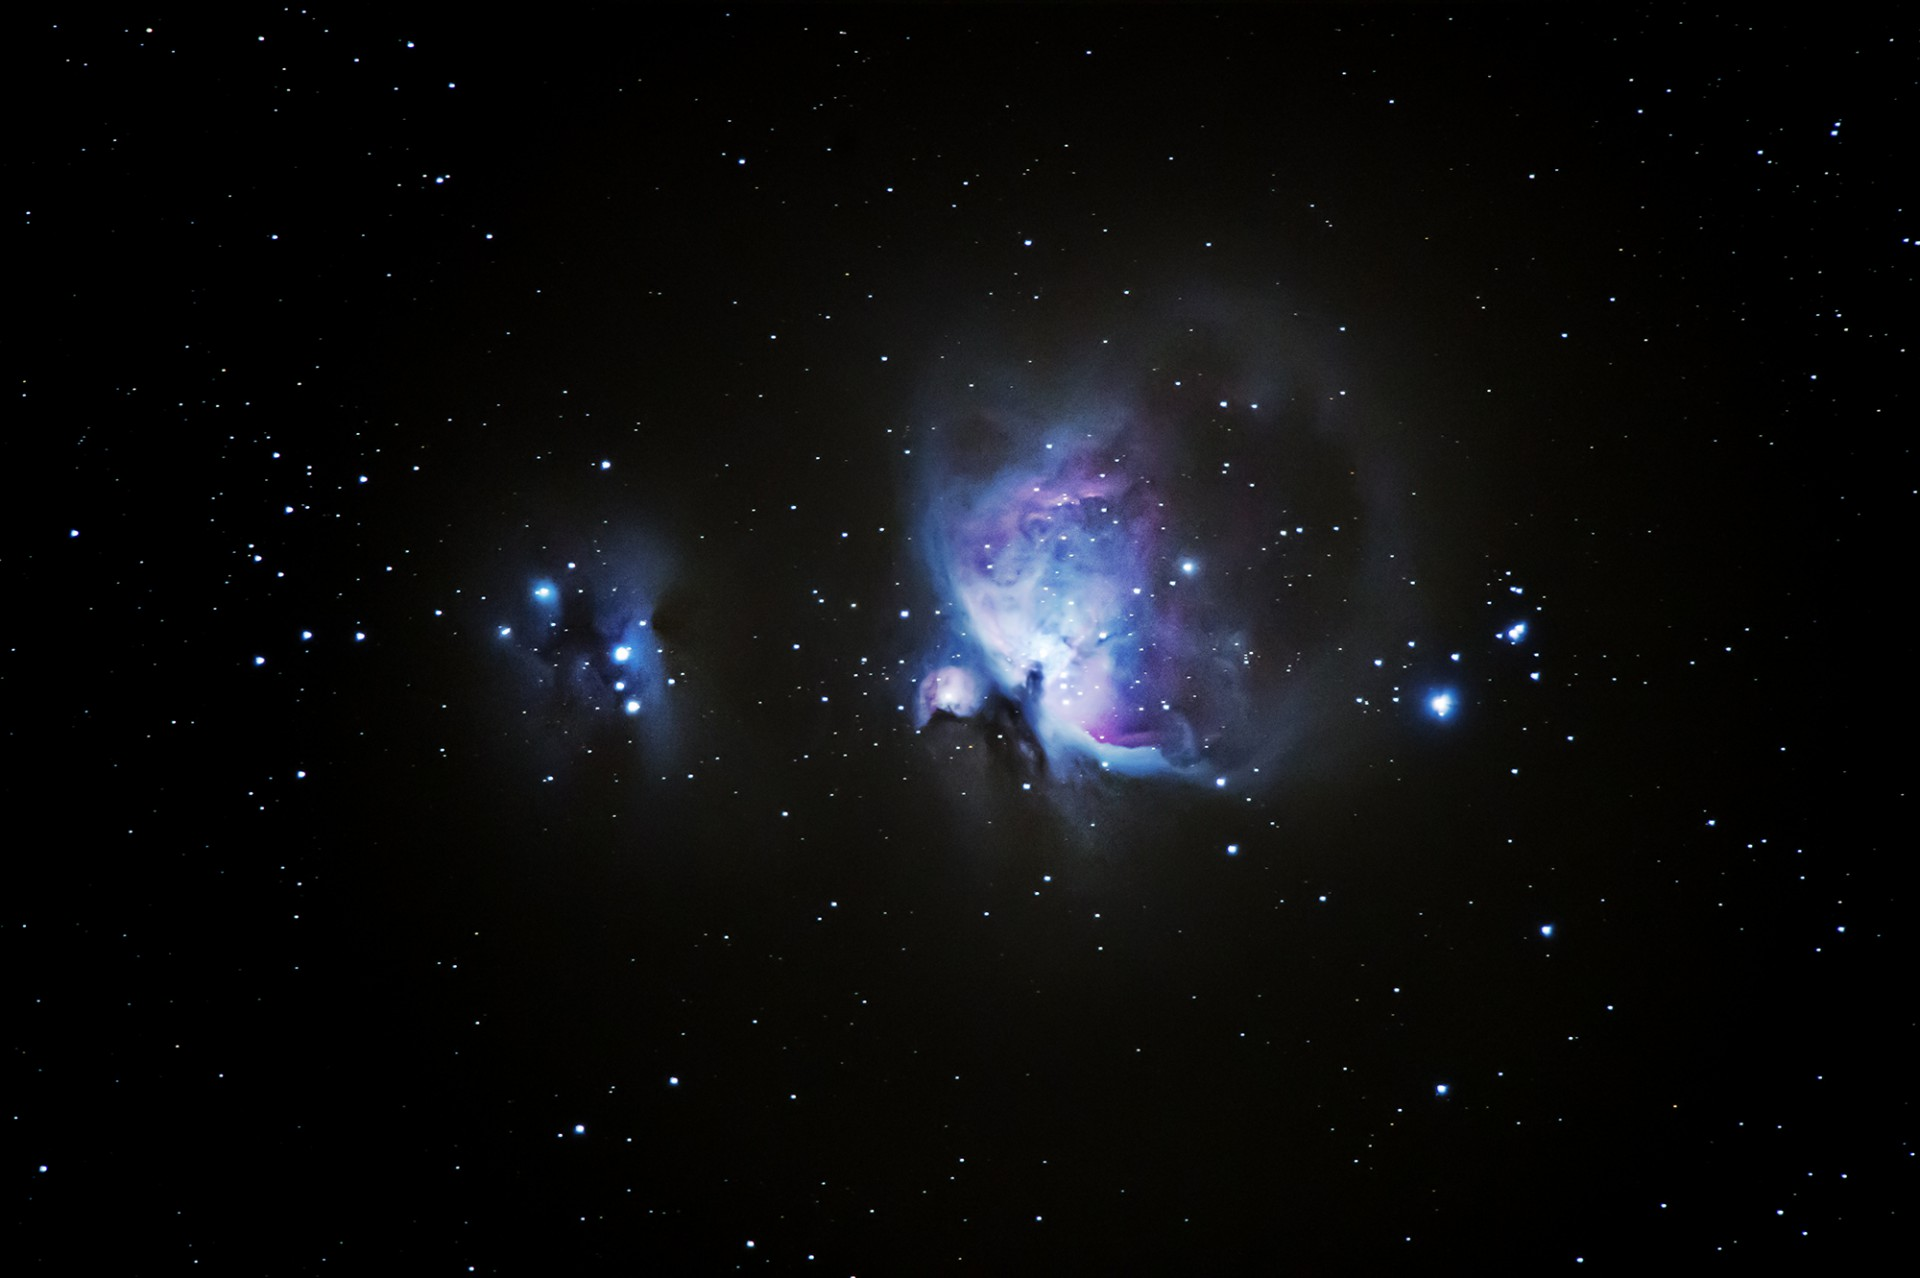 Orion Nebula (M 42)